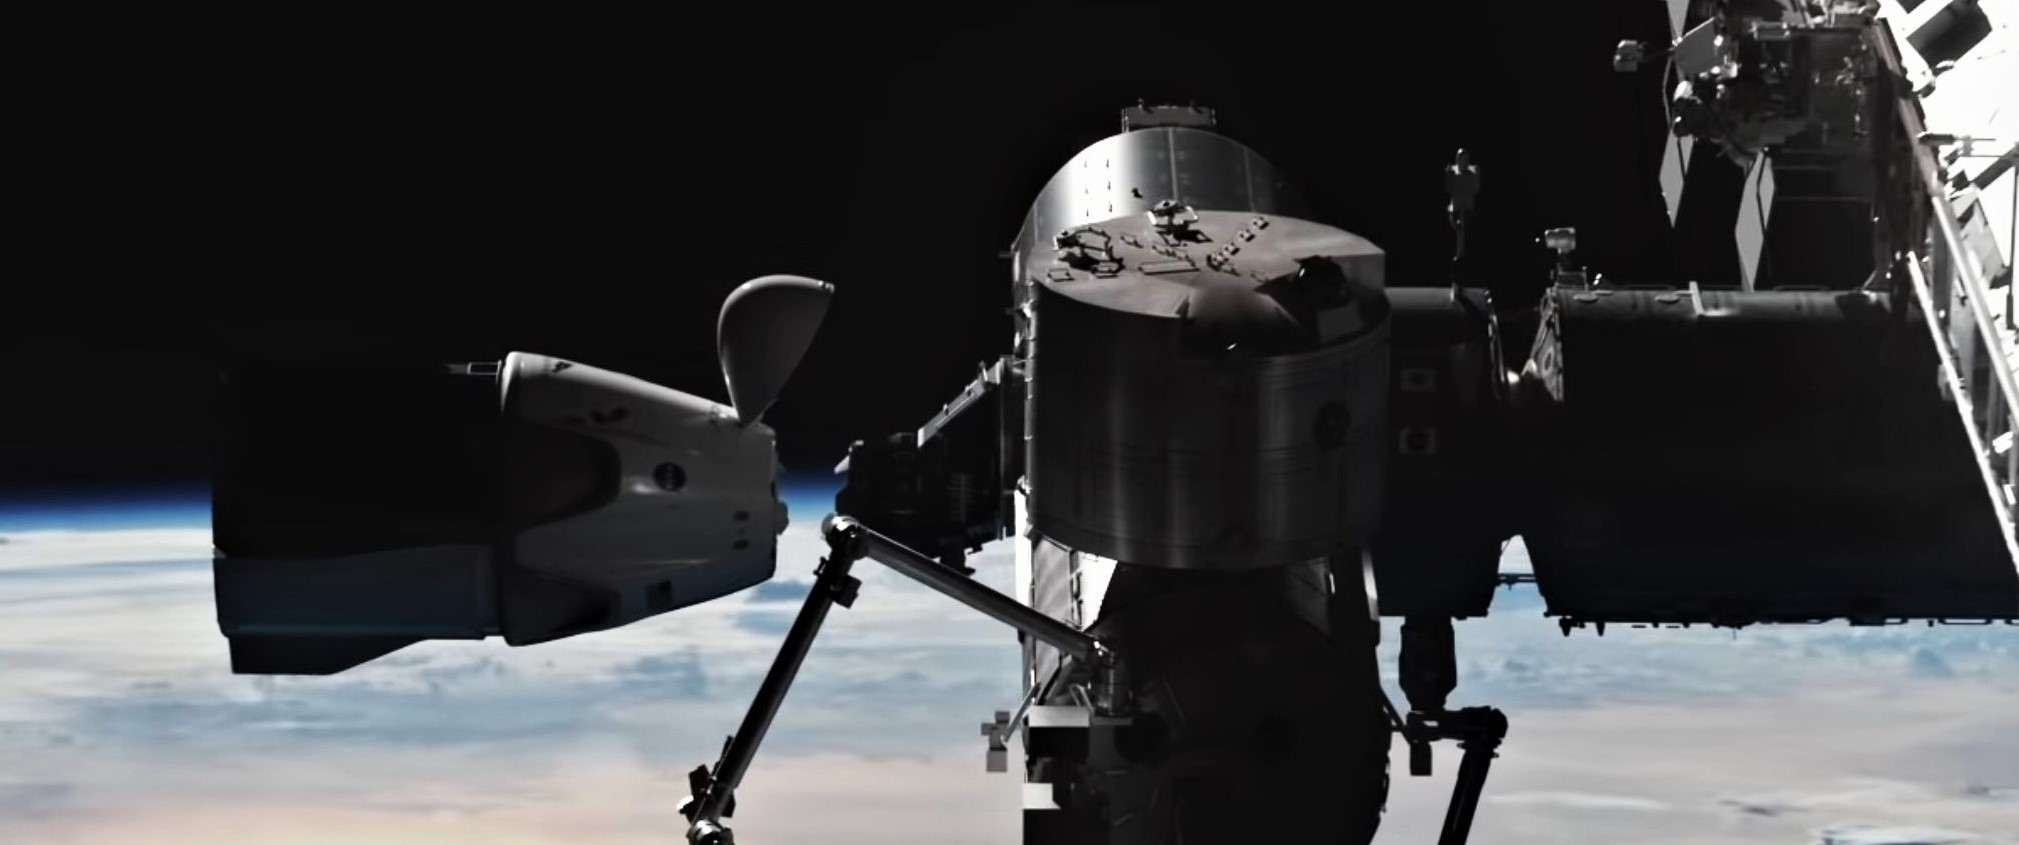 Crew Dragon Demo-2 animation Dec 2019 (SpaceX) ISS 4 crop